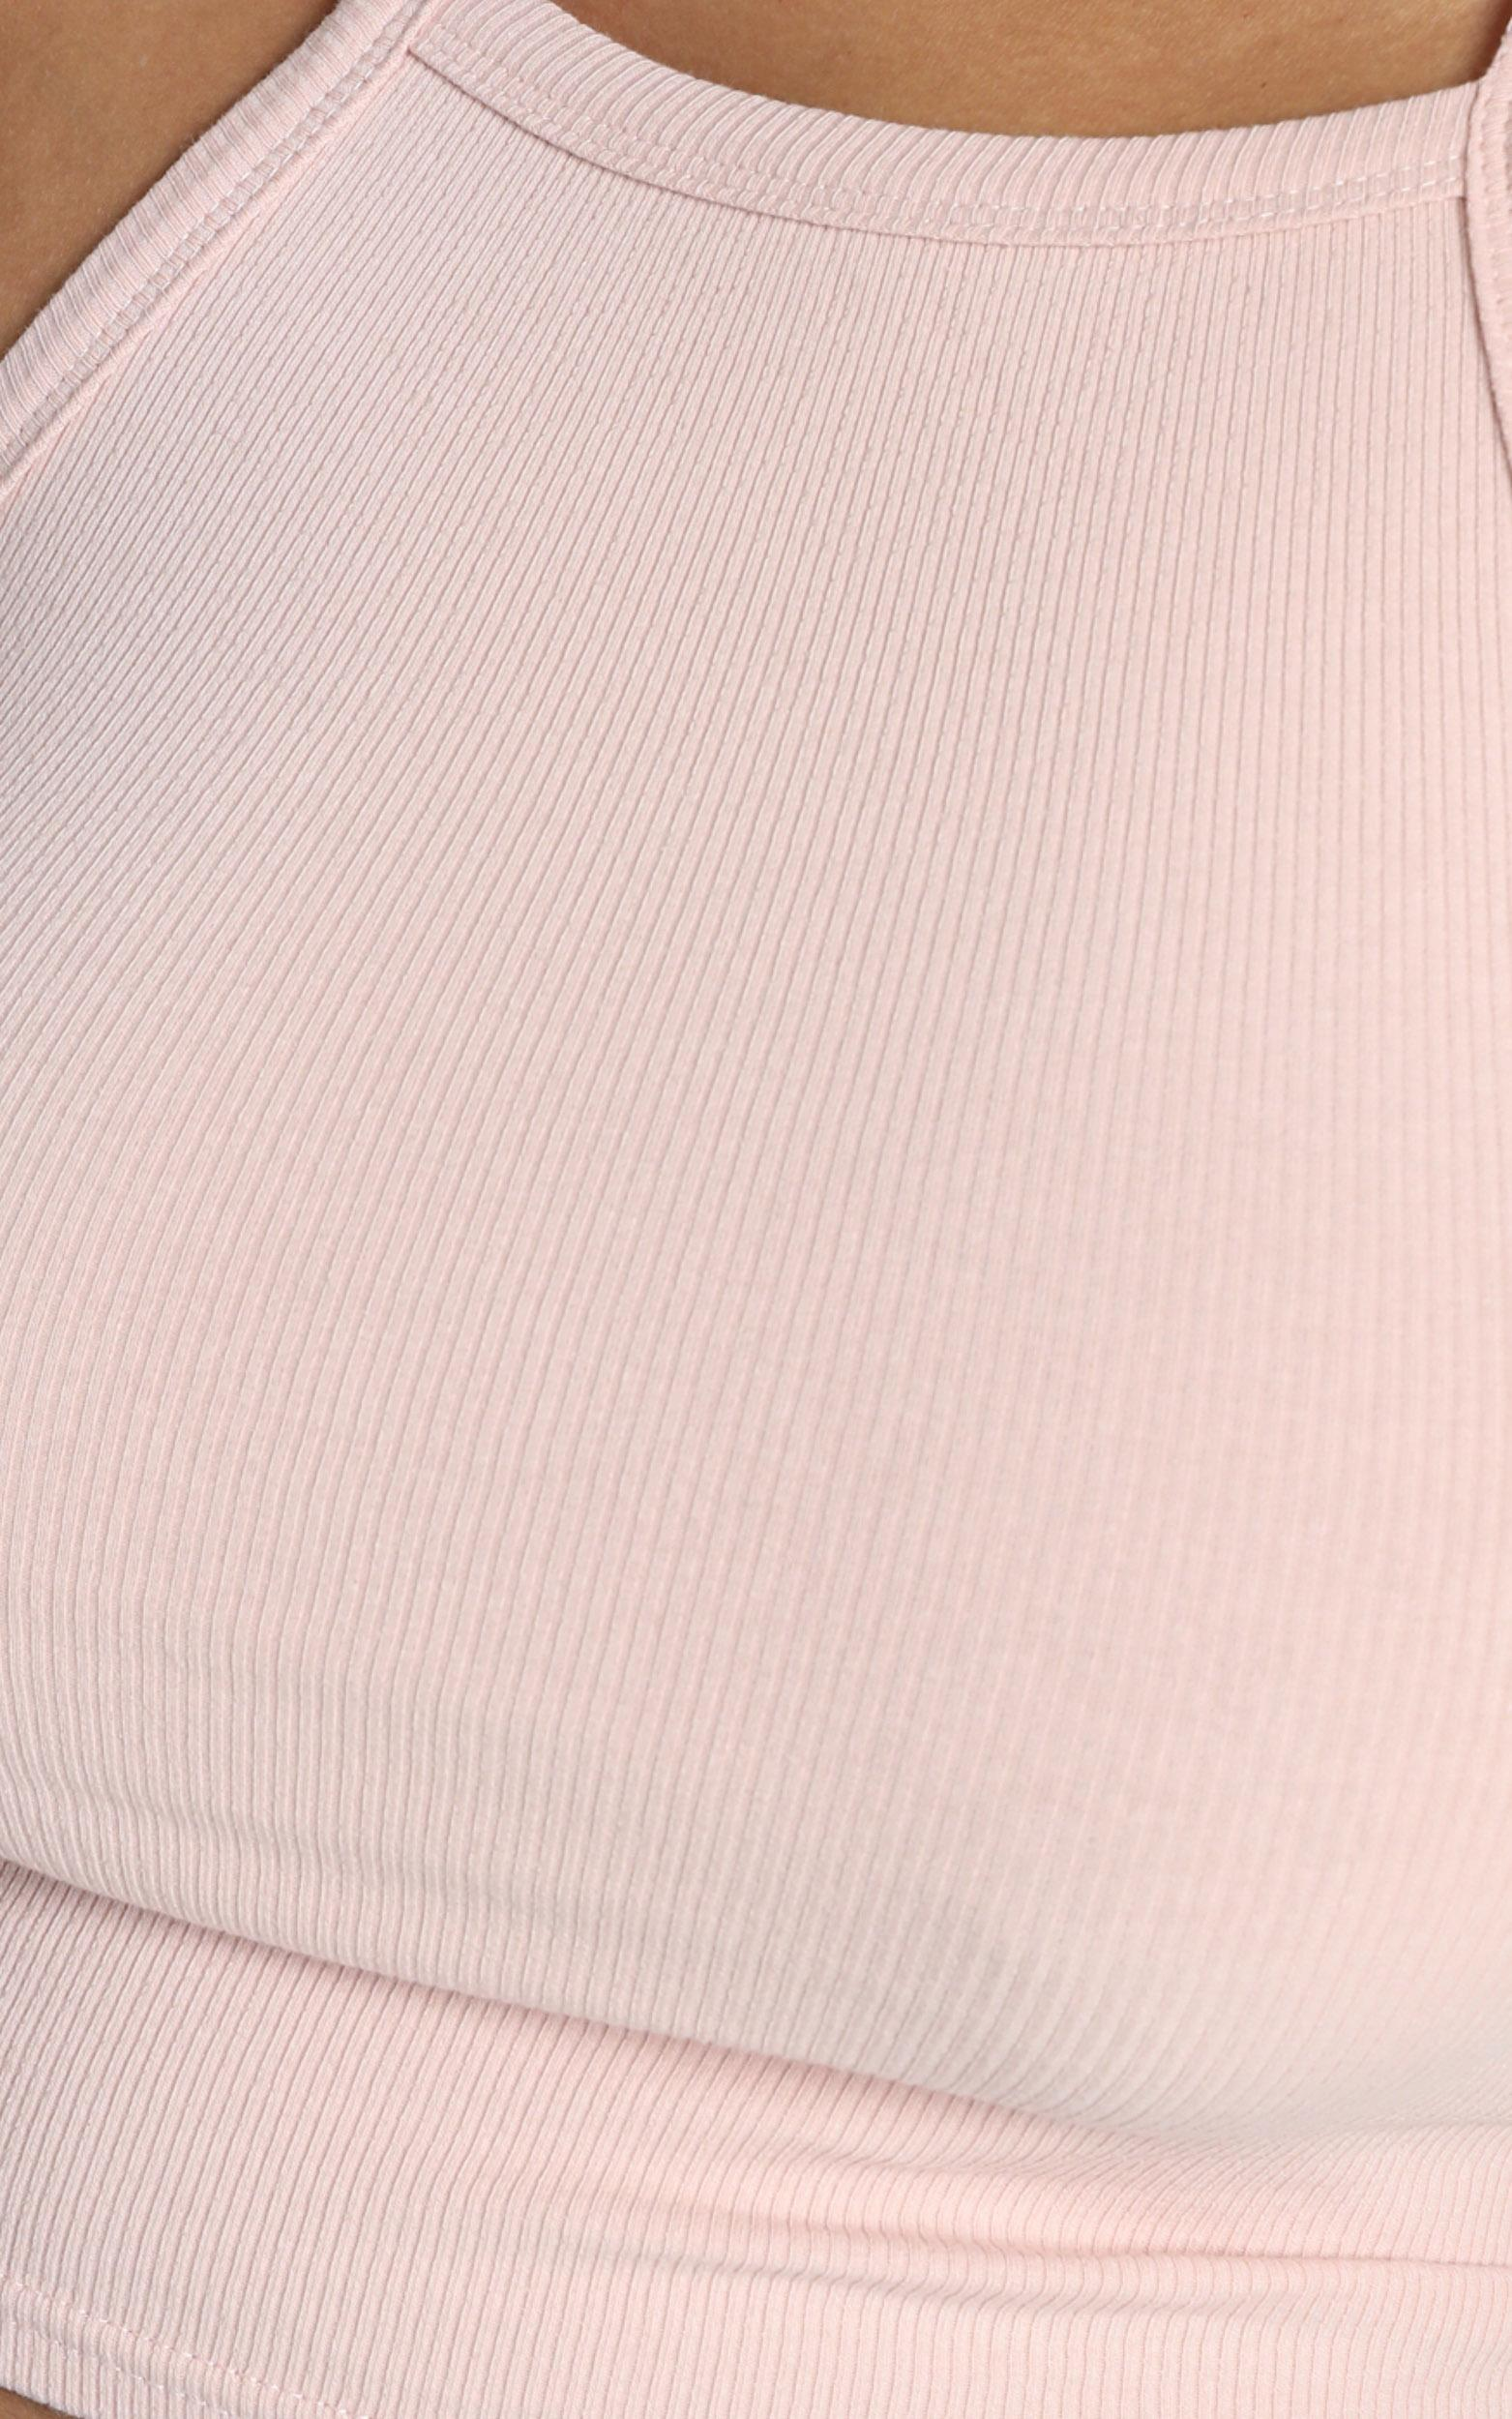 Been A While top in Blush - 12 (L), BLU1, hi-res image number null